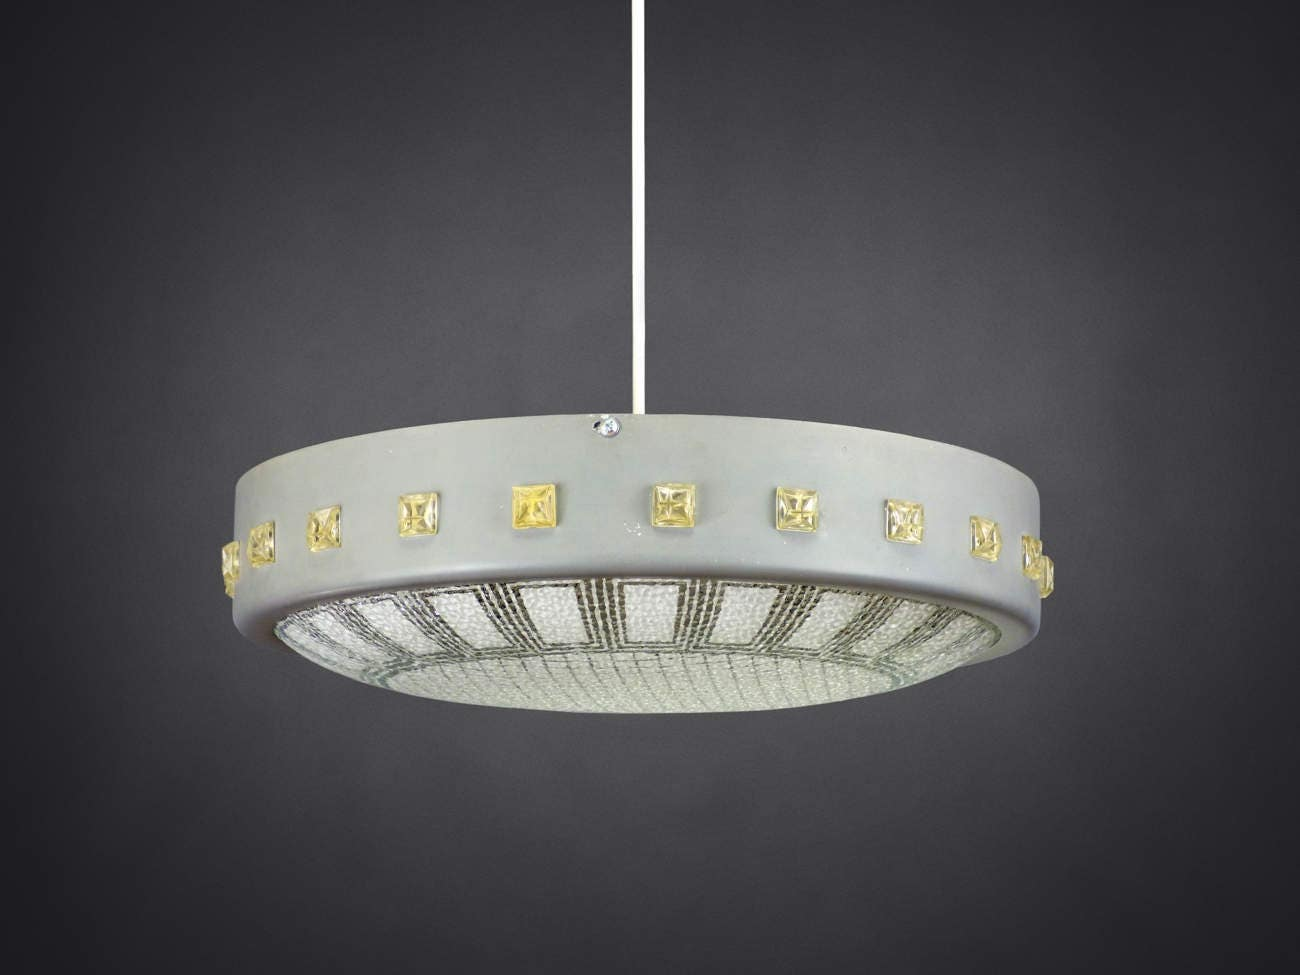 Pendant ceiling lamp ufo flying saucer style made in germany zoom arubaitofo Gallery